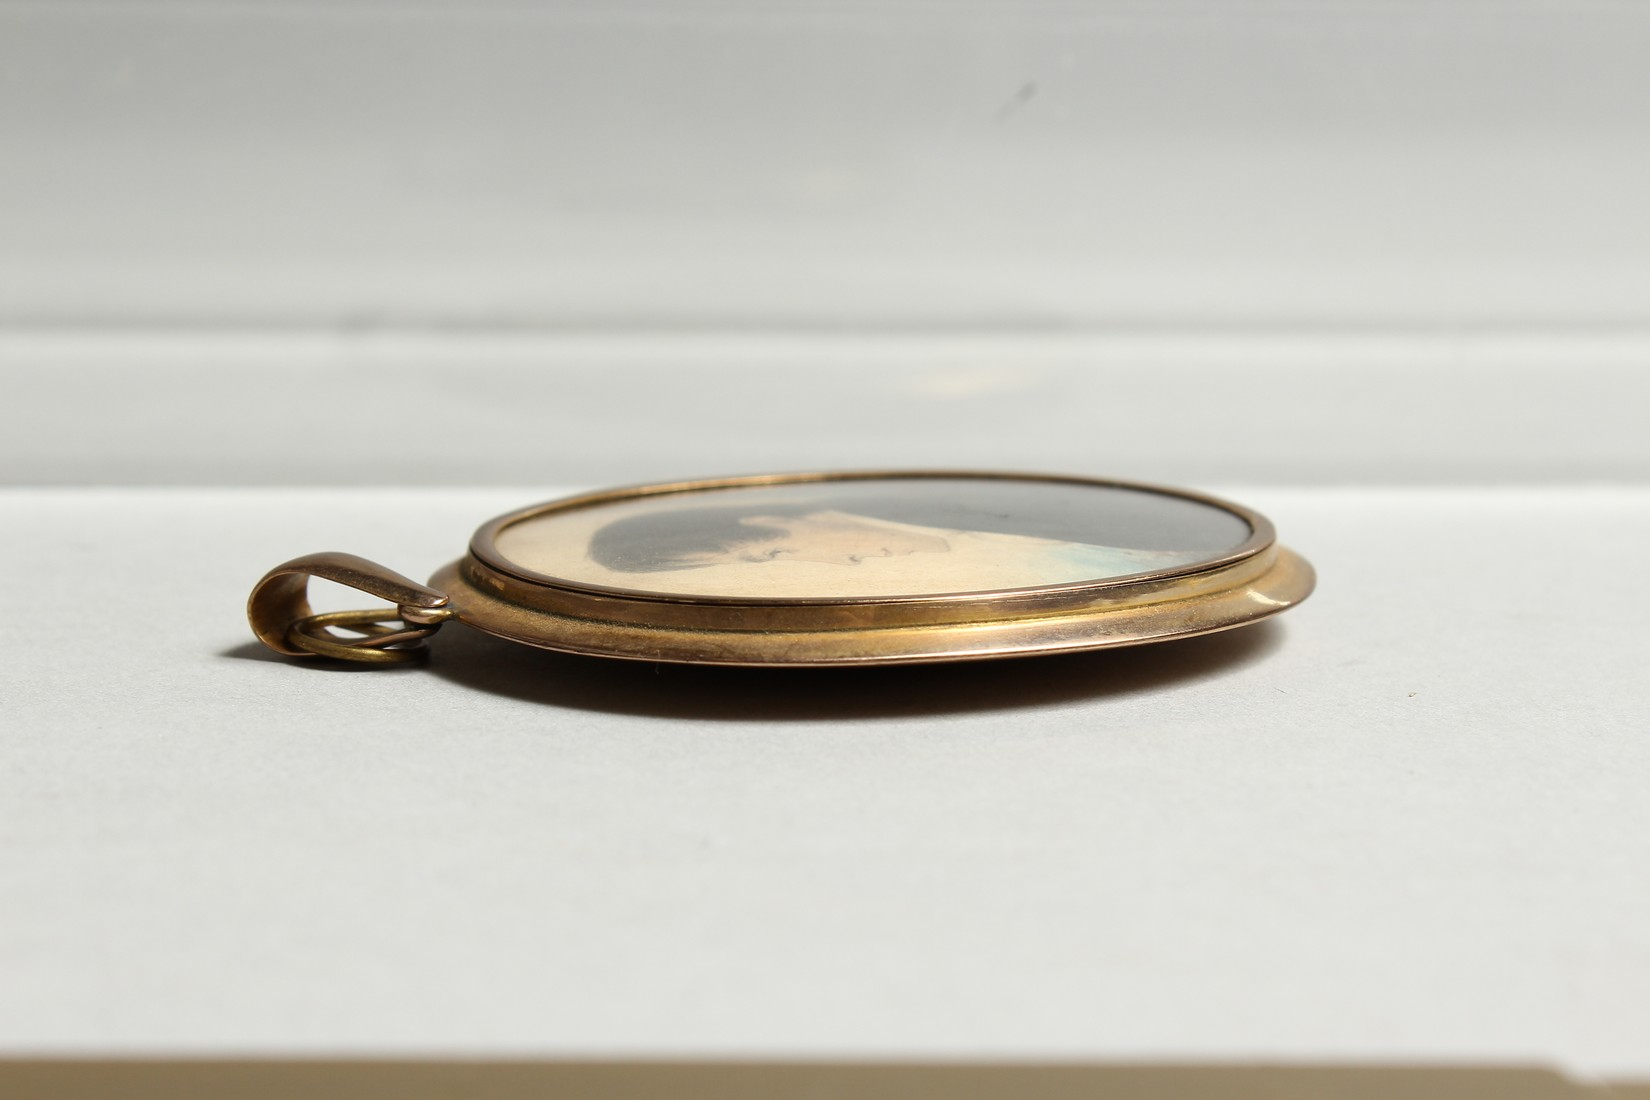 AN EARLY VICTORIAN OVAL MINIATURE OF A GENTLEMAN in a gilt frame. 2.25ins x 1.75ins - Image 6 of 7